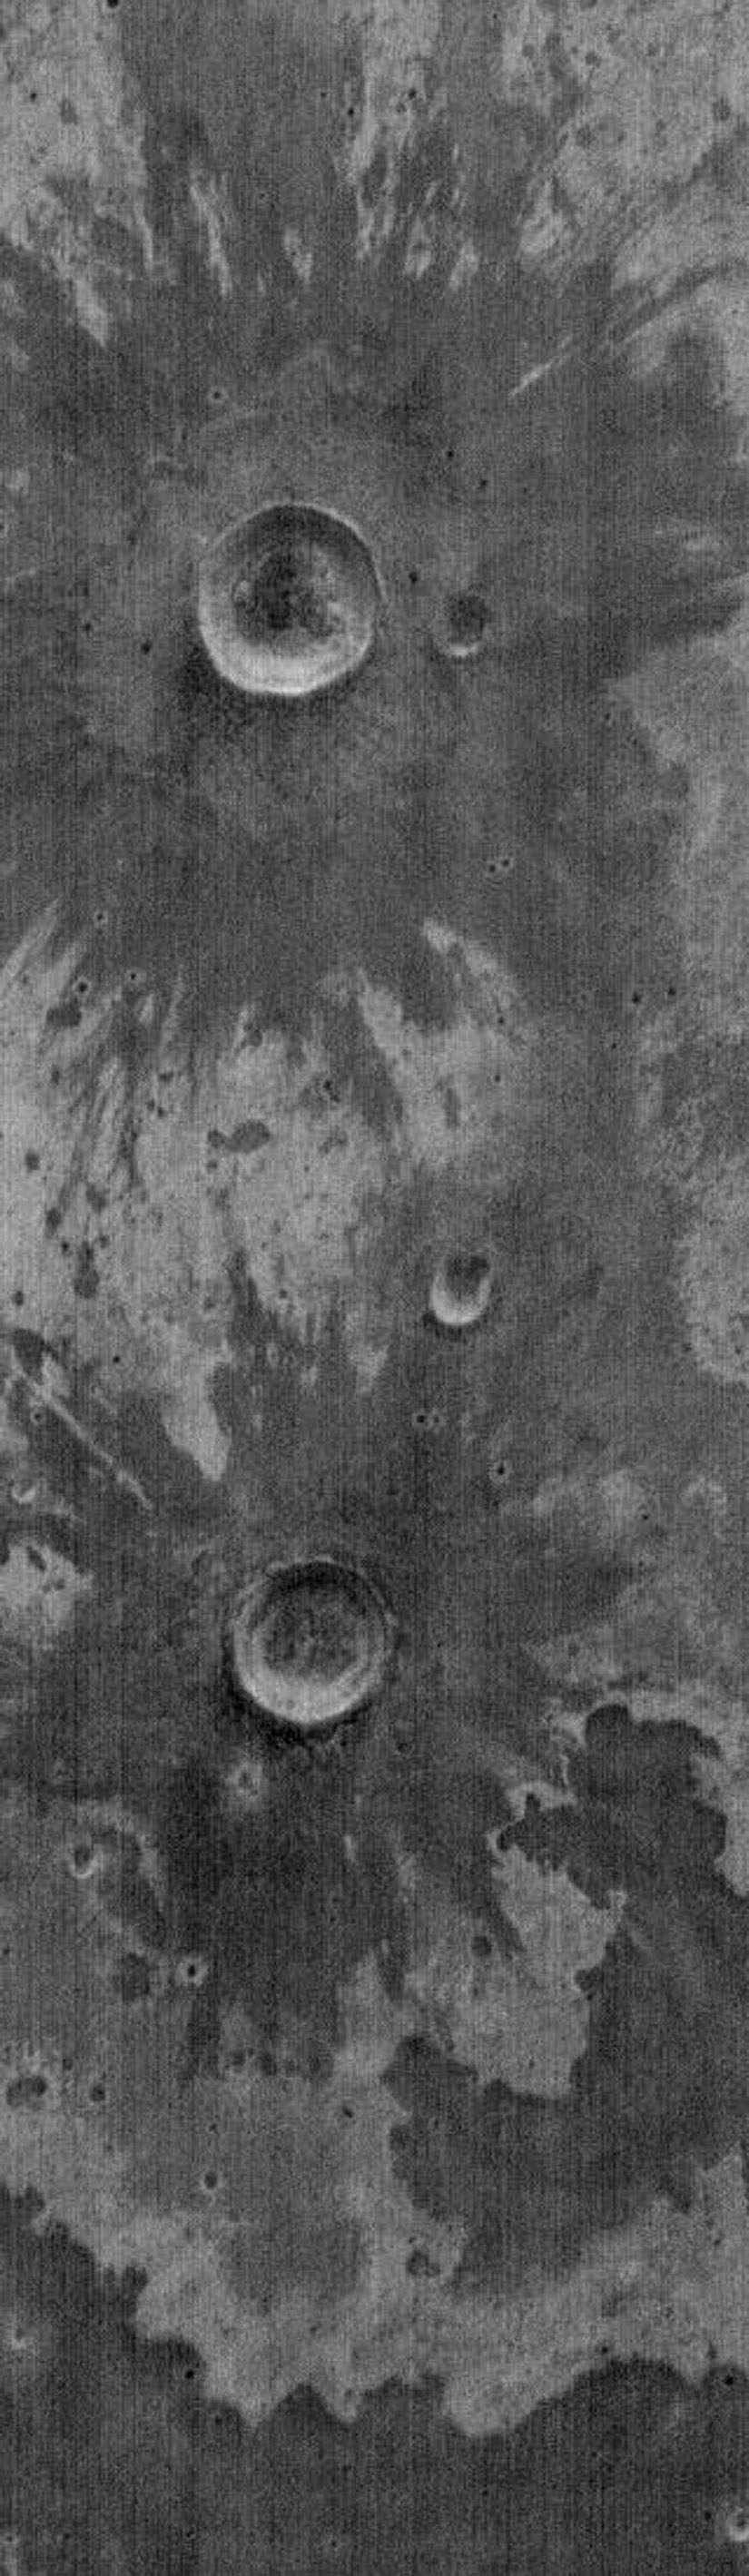 NASA's Mars Odyssey spacecraft takes a look at THEMIS image as art. Many science-fiction writers have postulated many life forms on Mars. Perhaps some flowers?